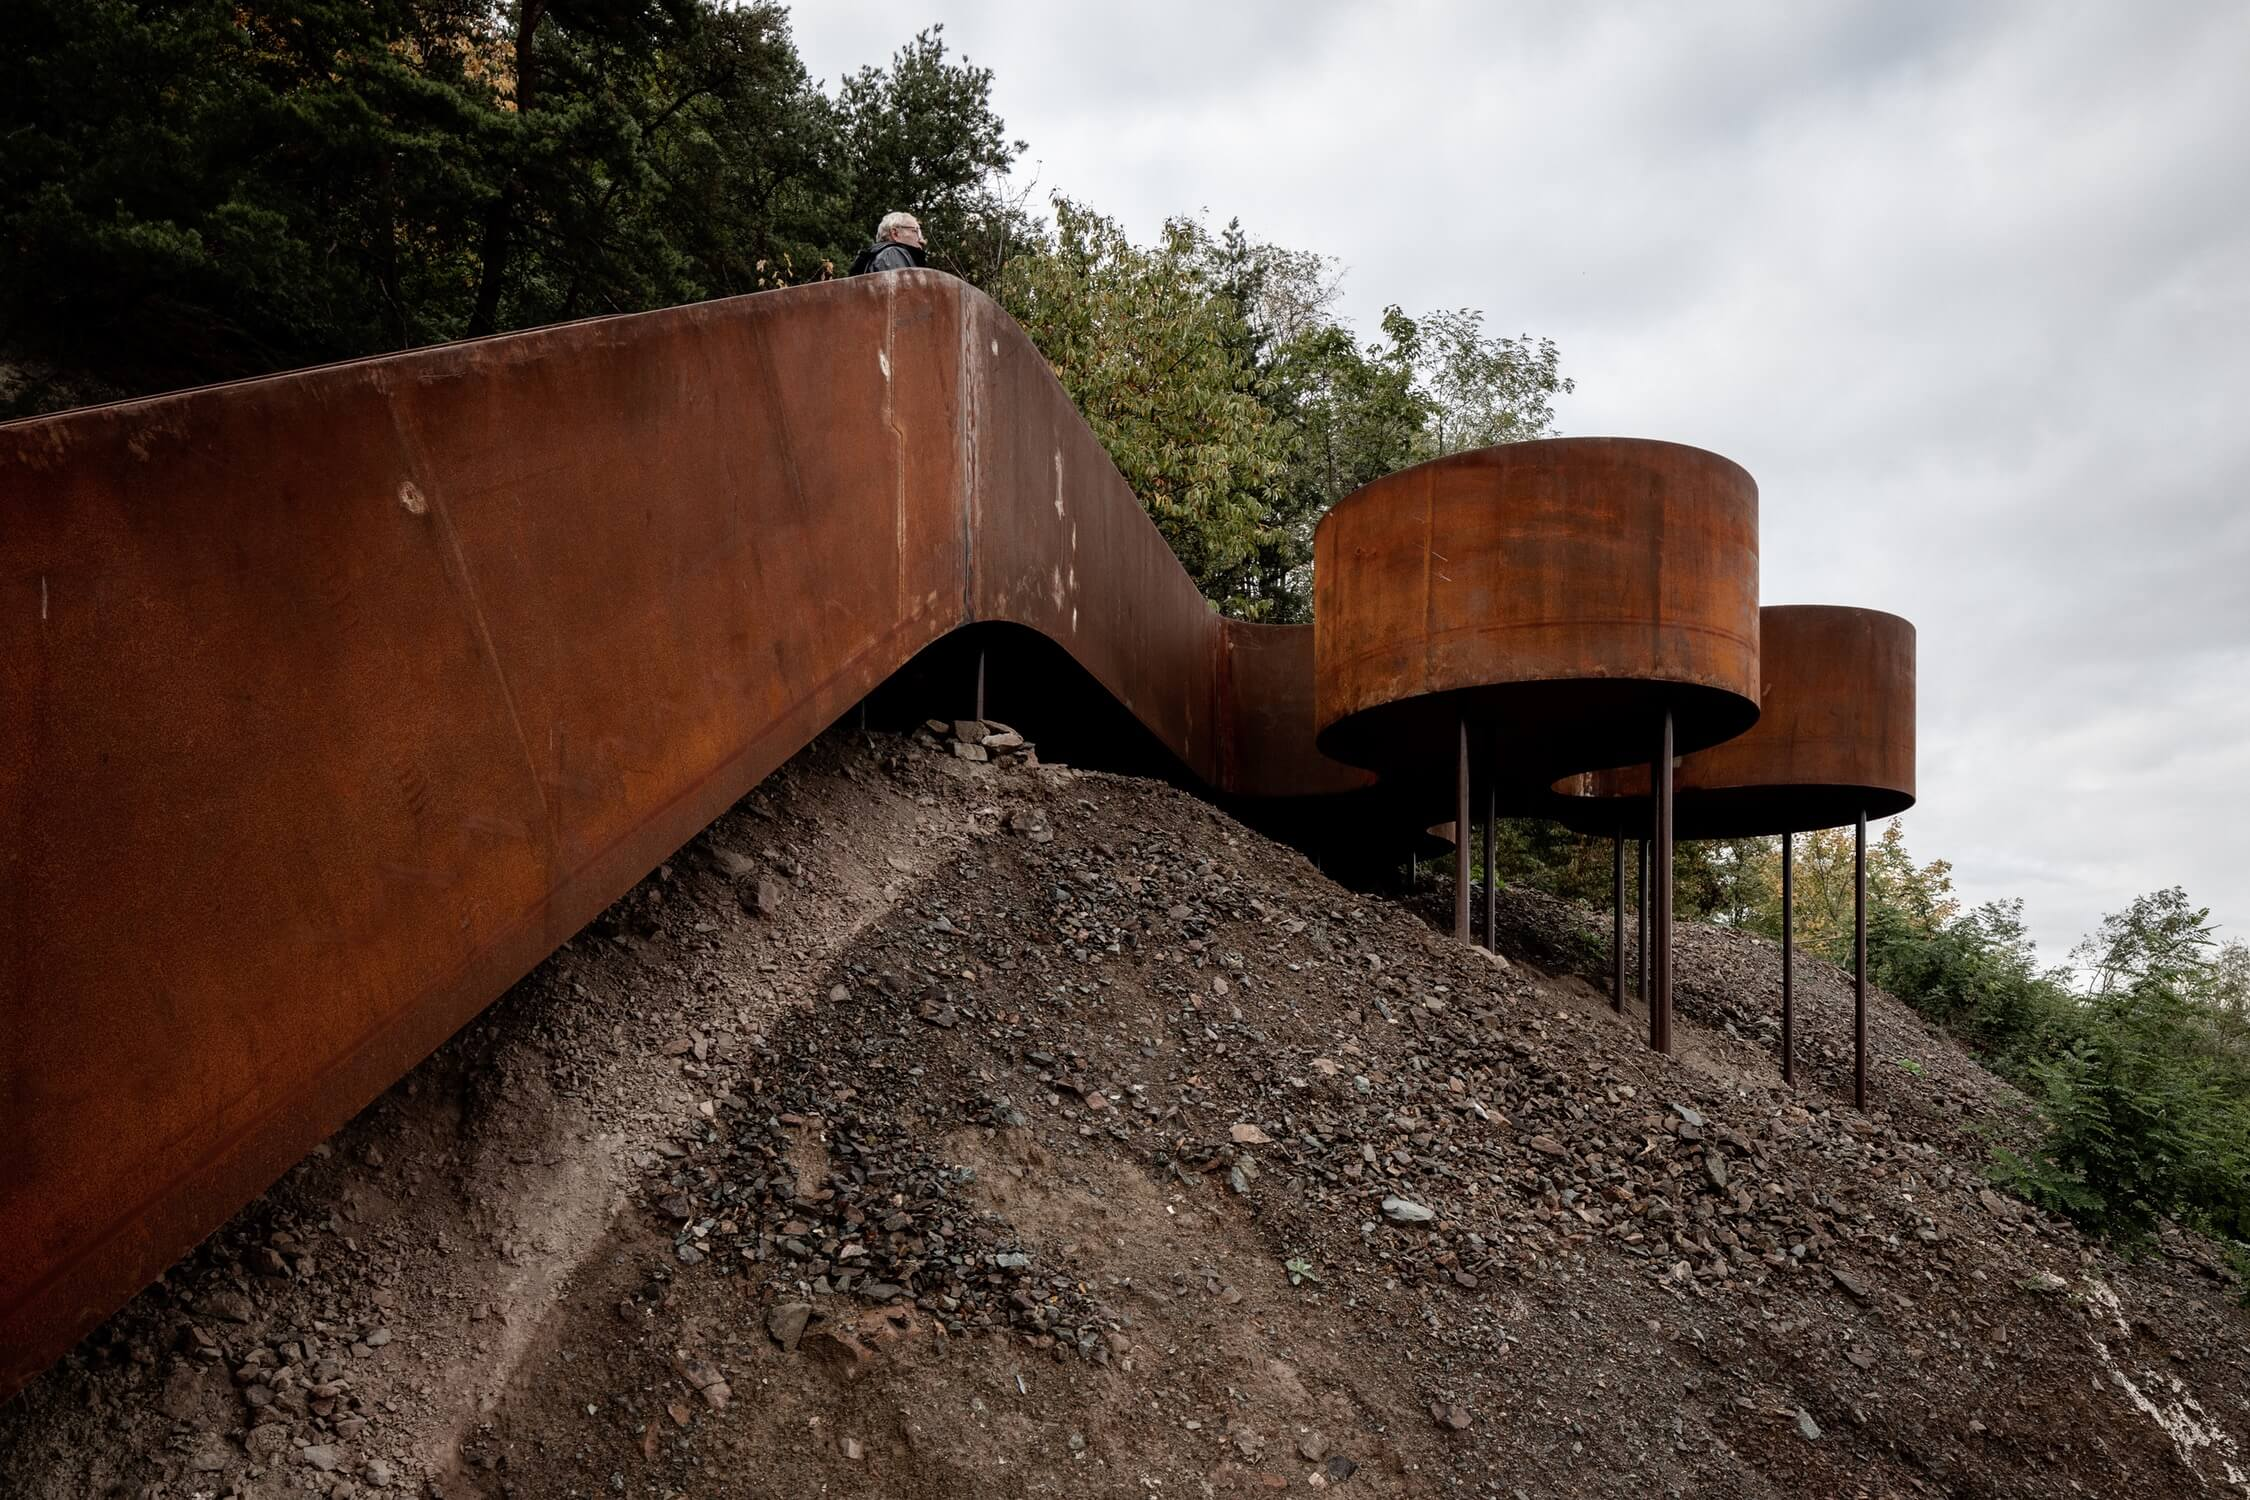 A worm's eye view of the elevated weathering steel lookout